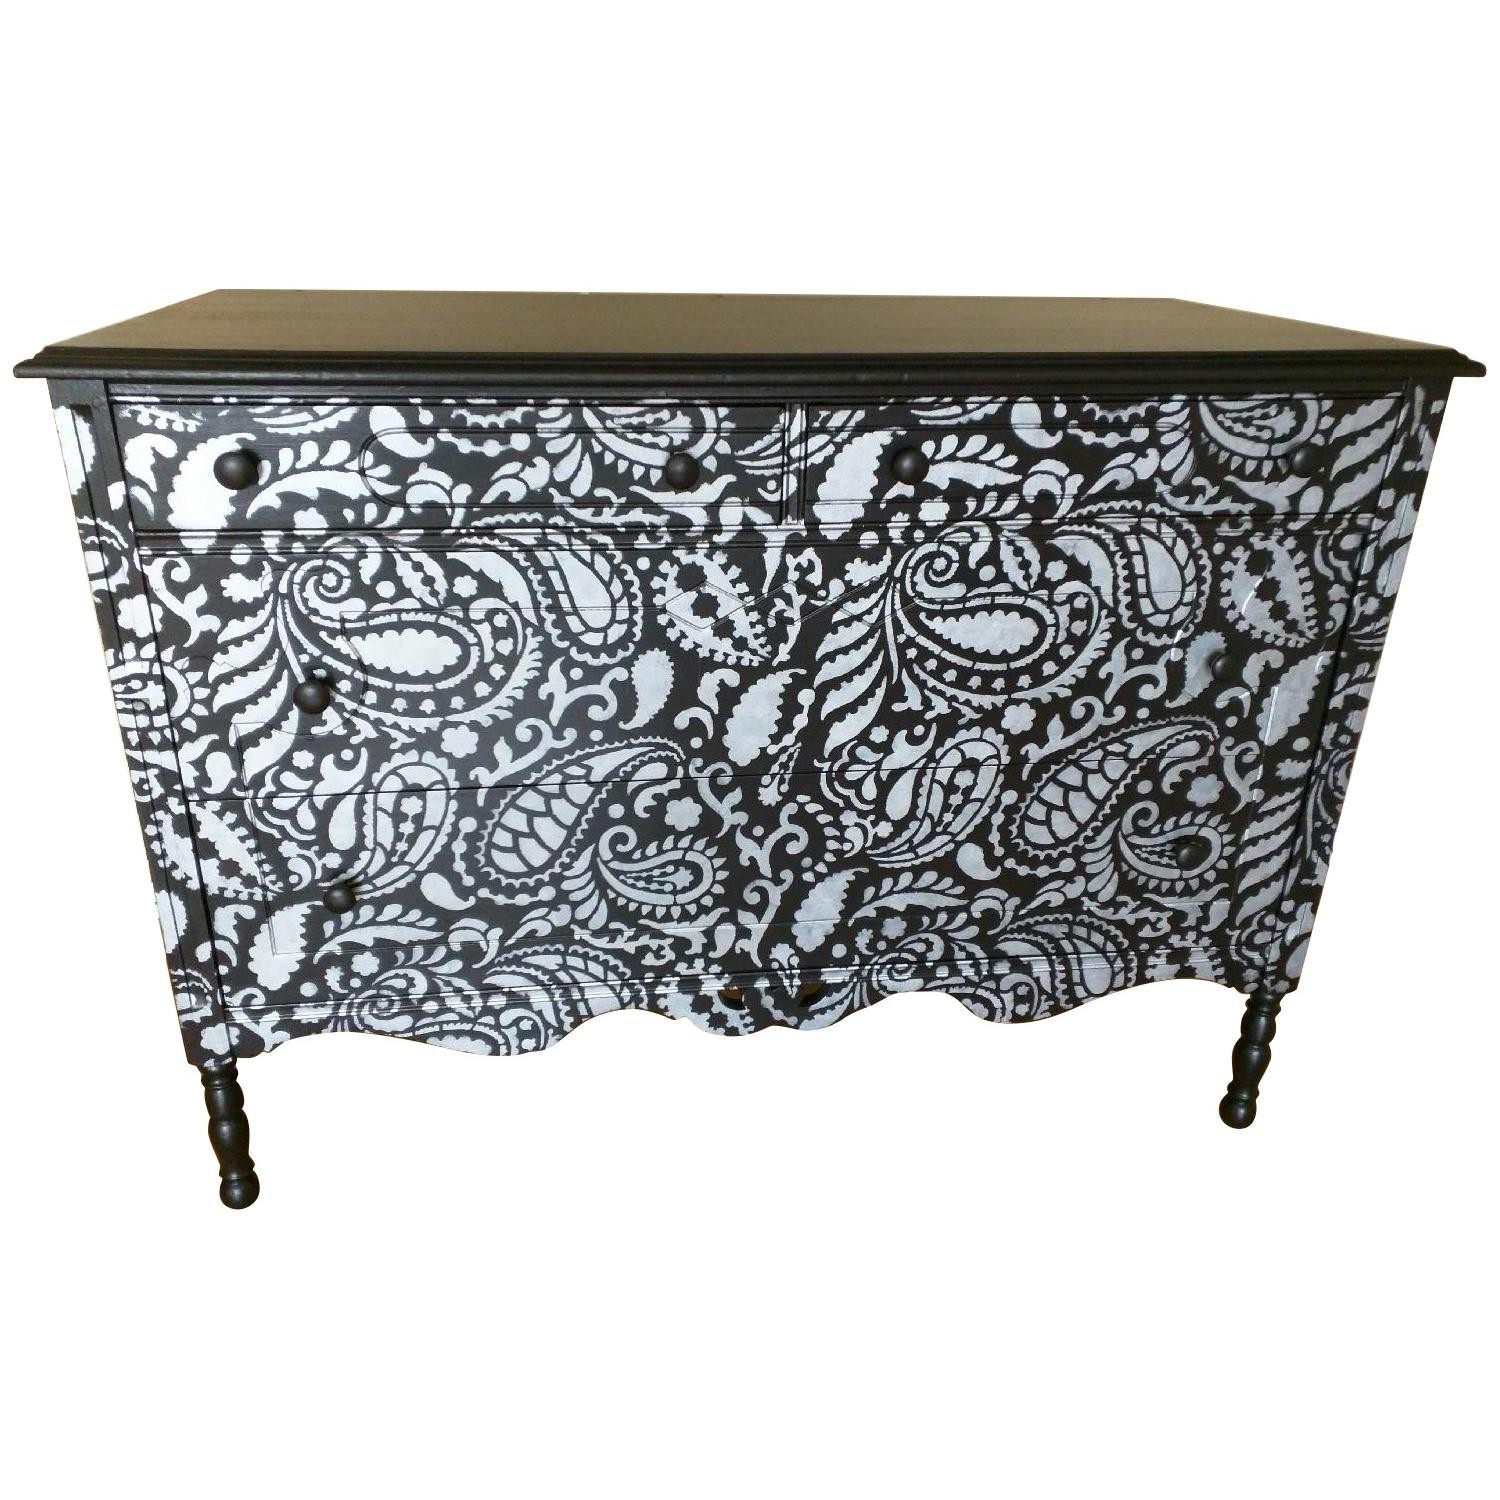 Black Dresser in Silver Paisley Design